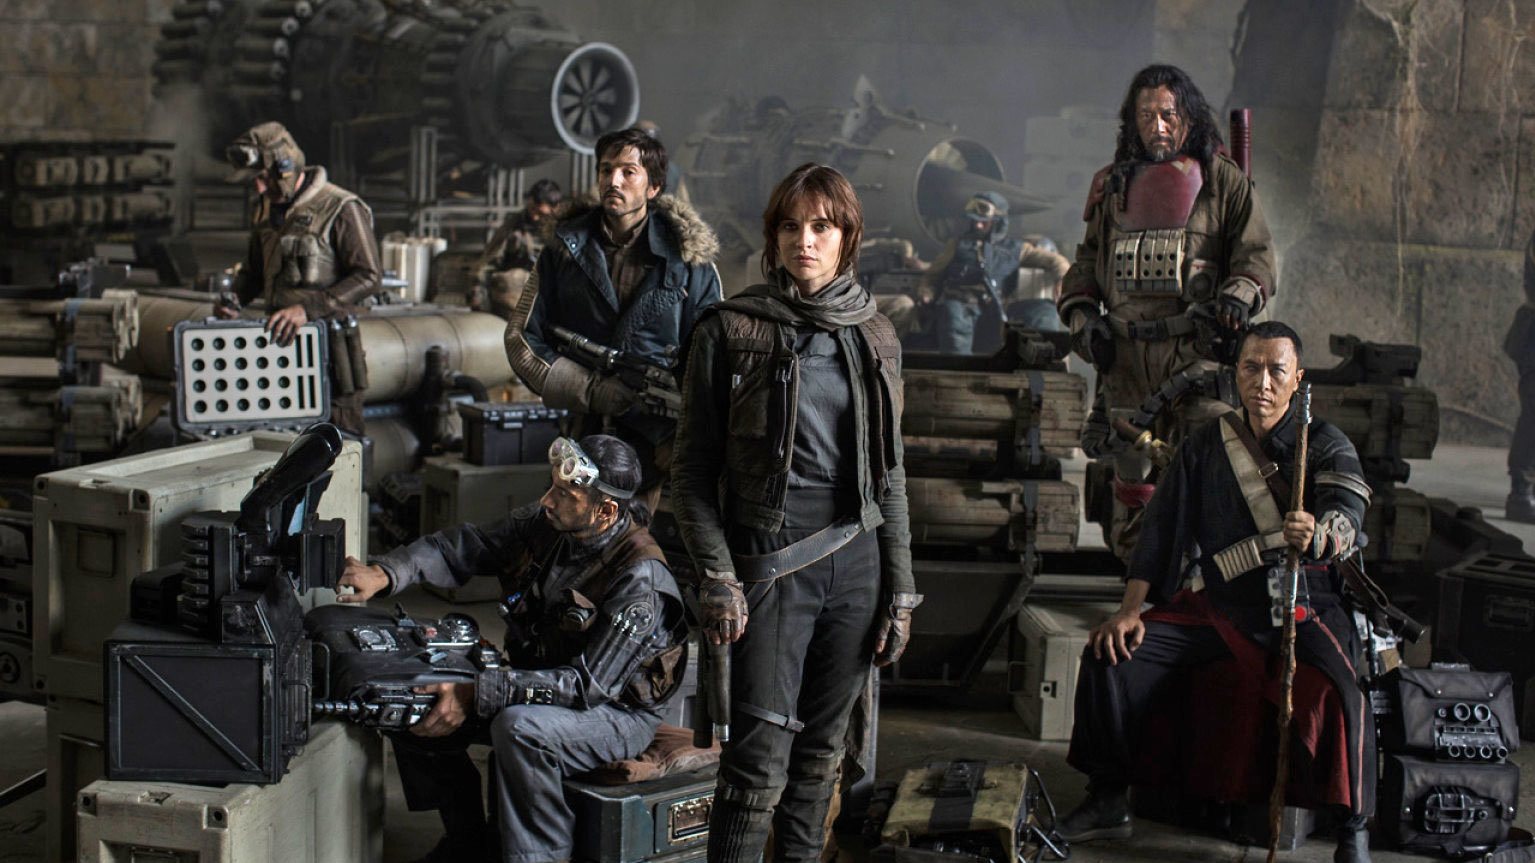 #88) Rogue One: A Star Wars Story - (2016 - dir. Gareth Edwards)